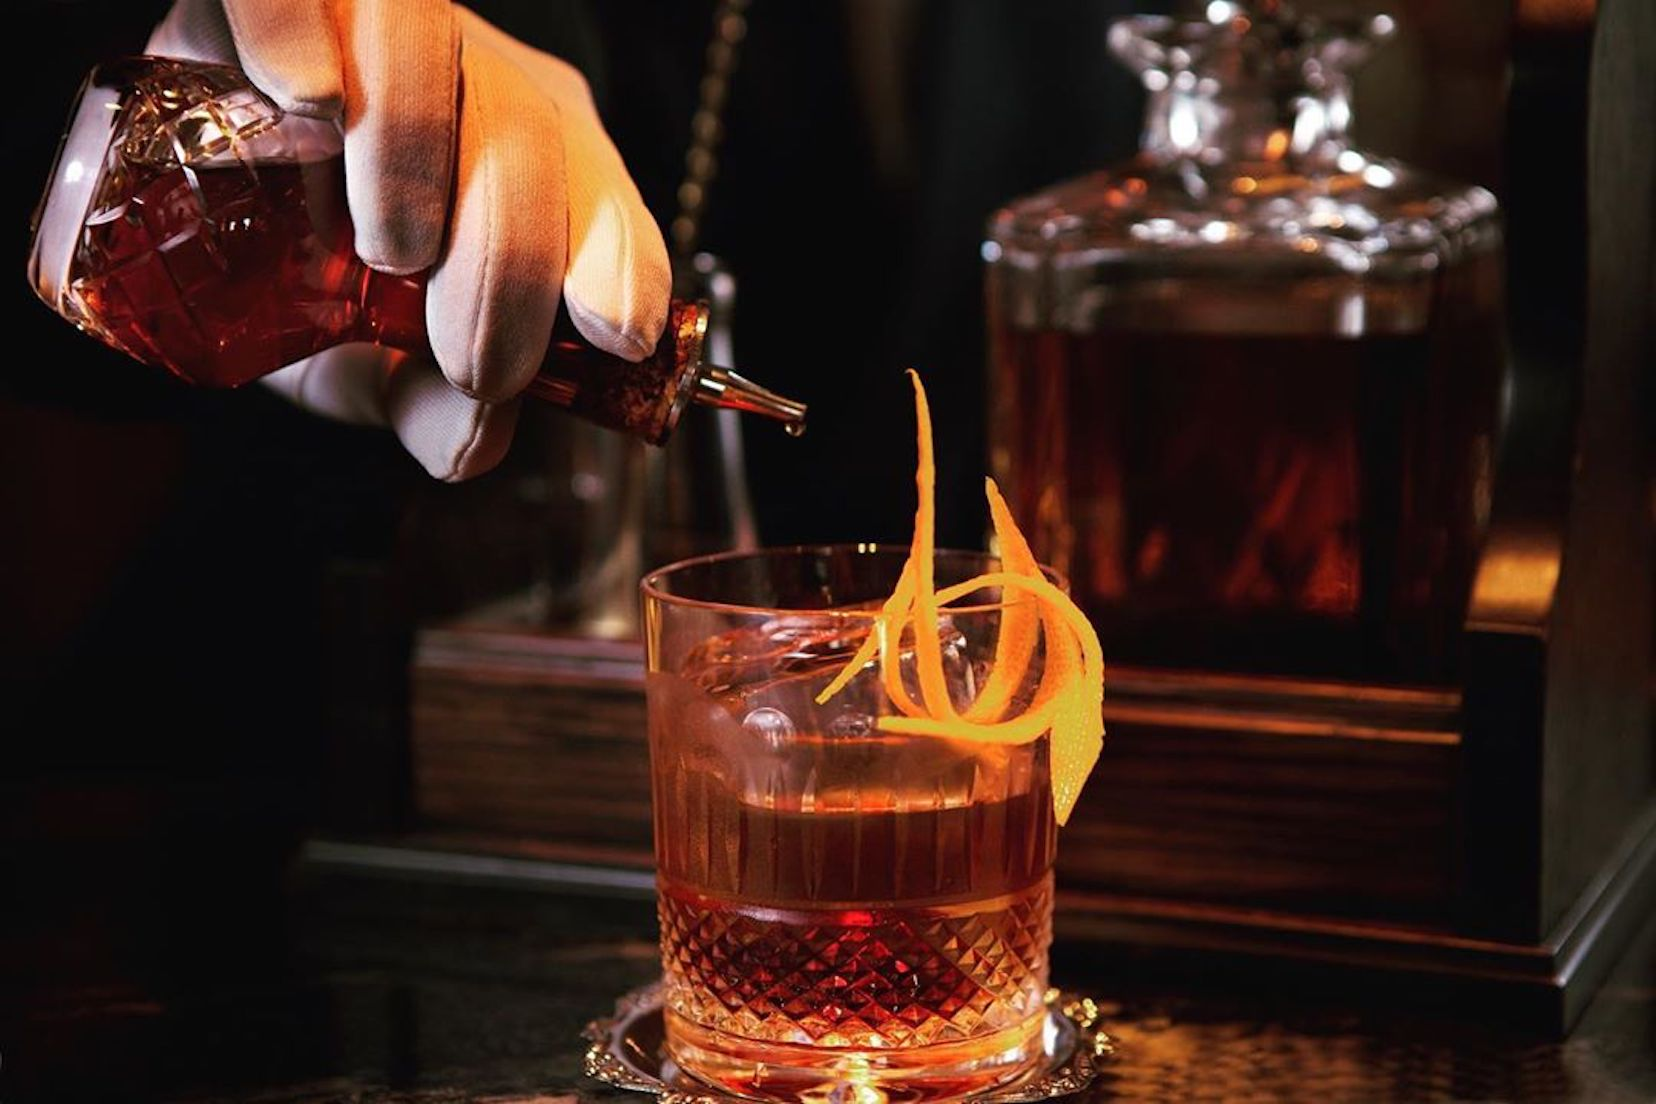 The Cognac Old Fashioned